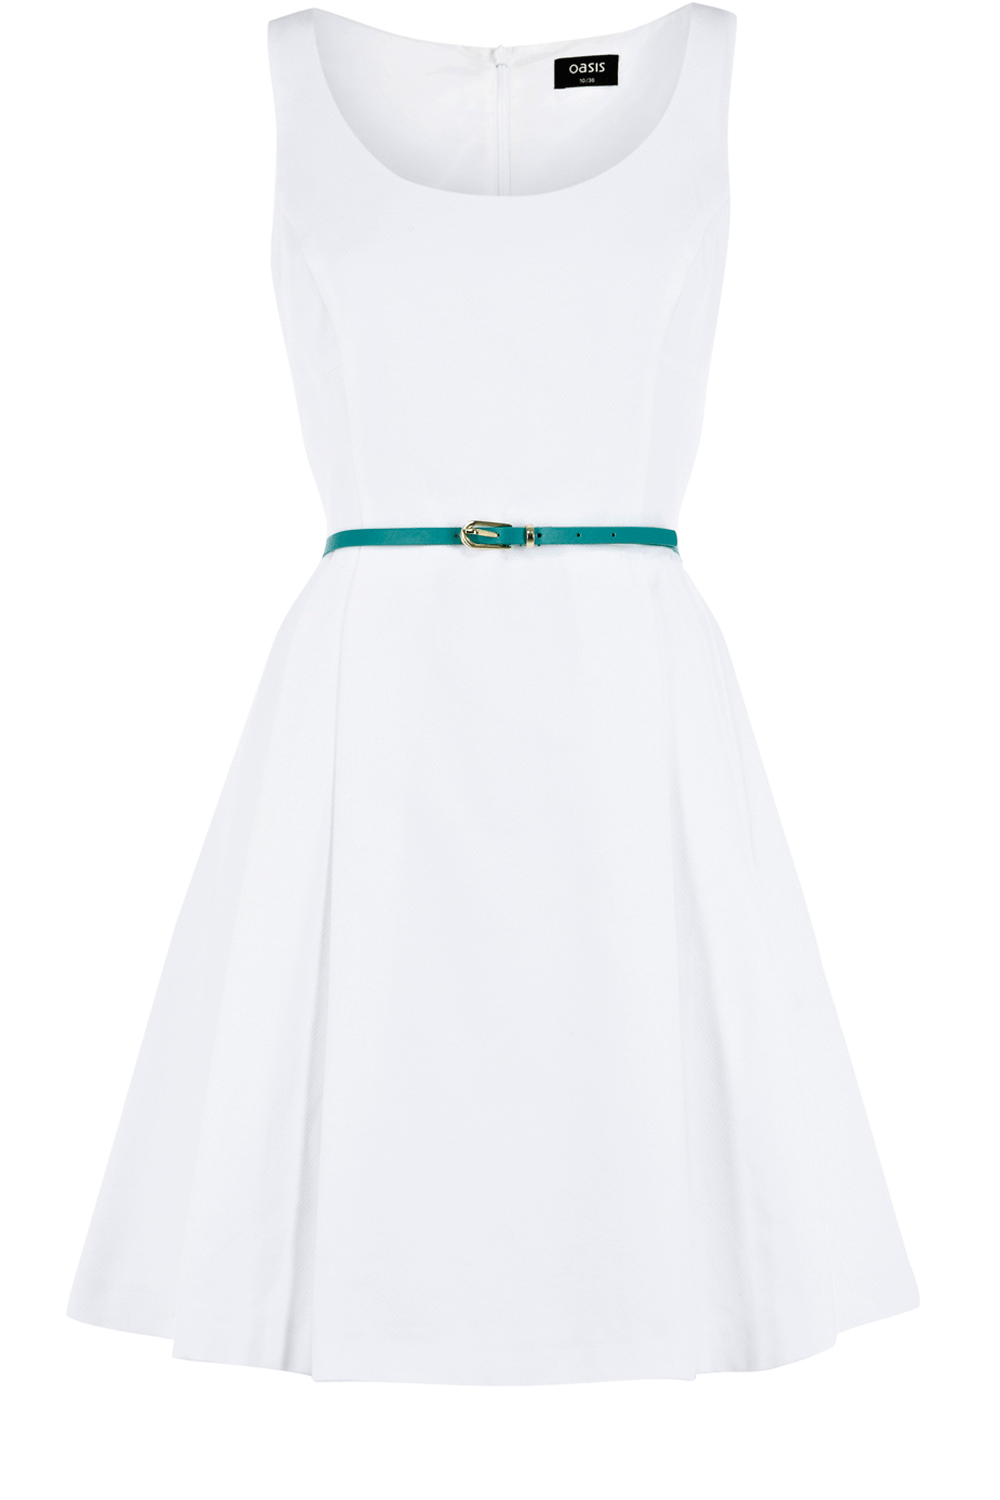 Oasis All Dresses | White Textured Dress | Womens Fashion Clothing | Oasis Stores UK